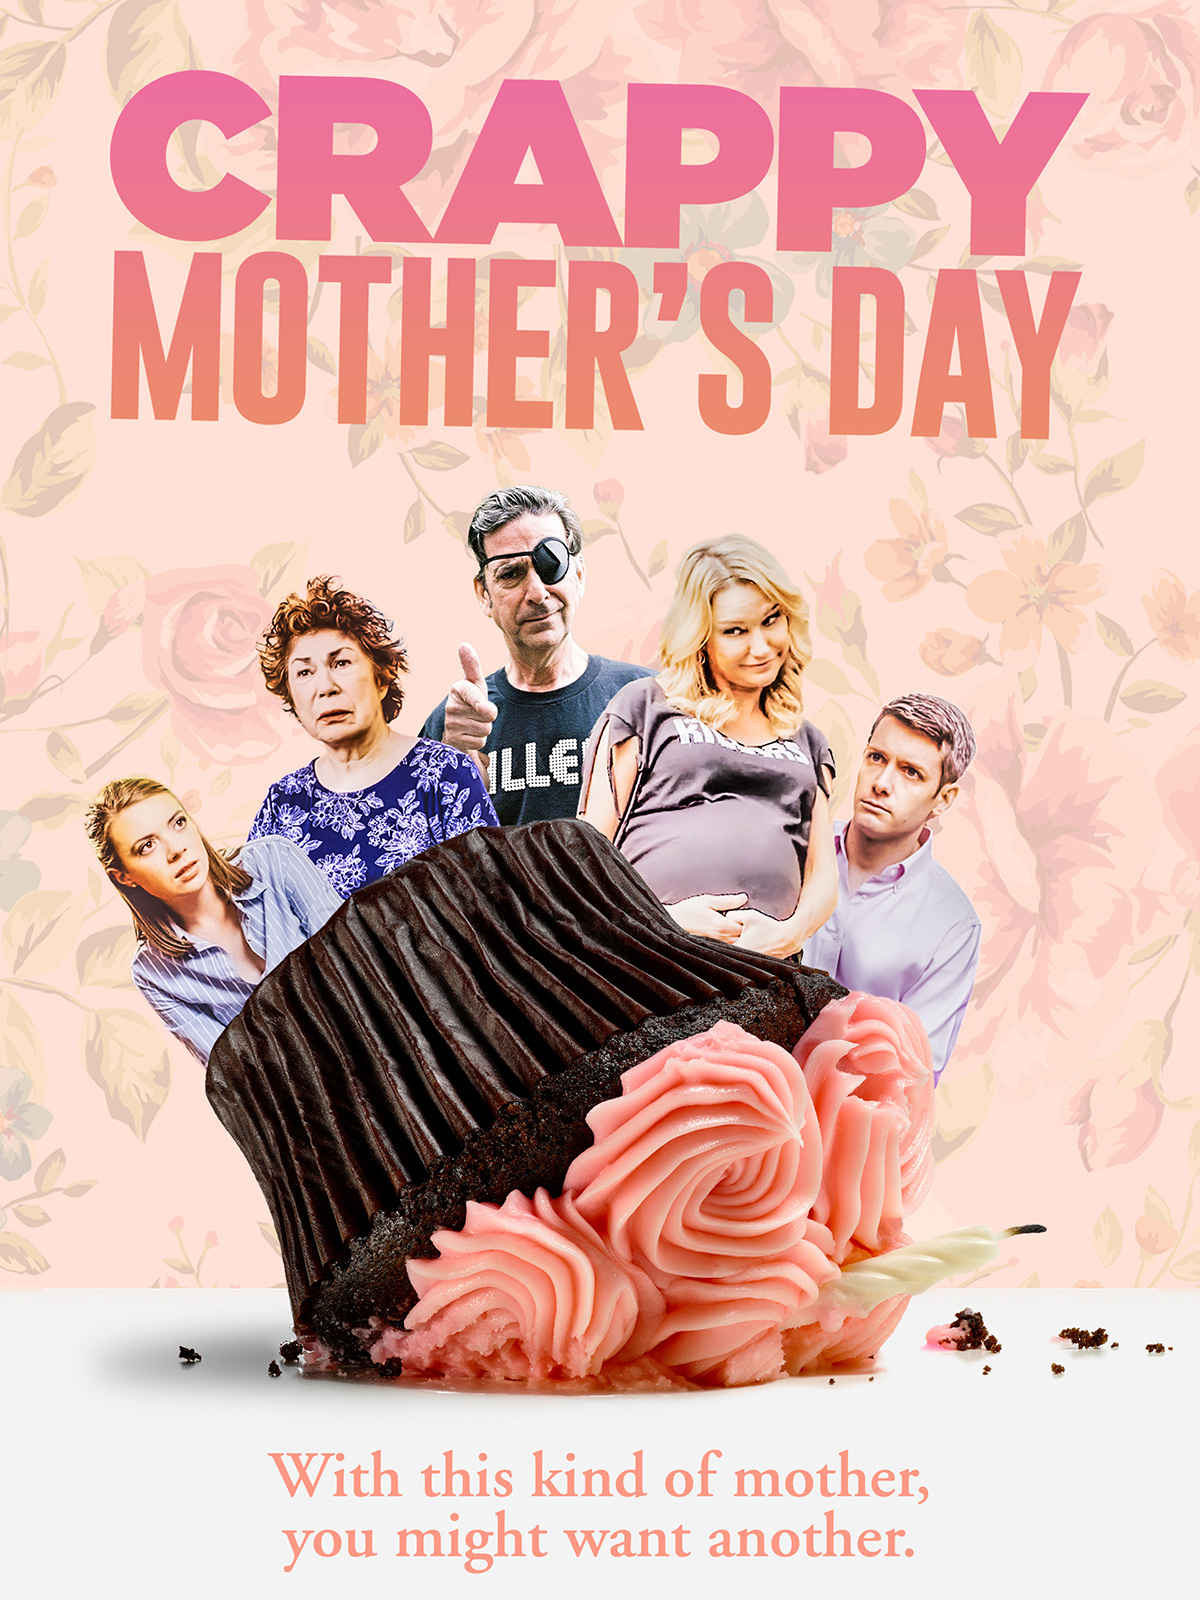 Crappy Mothers Day